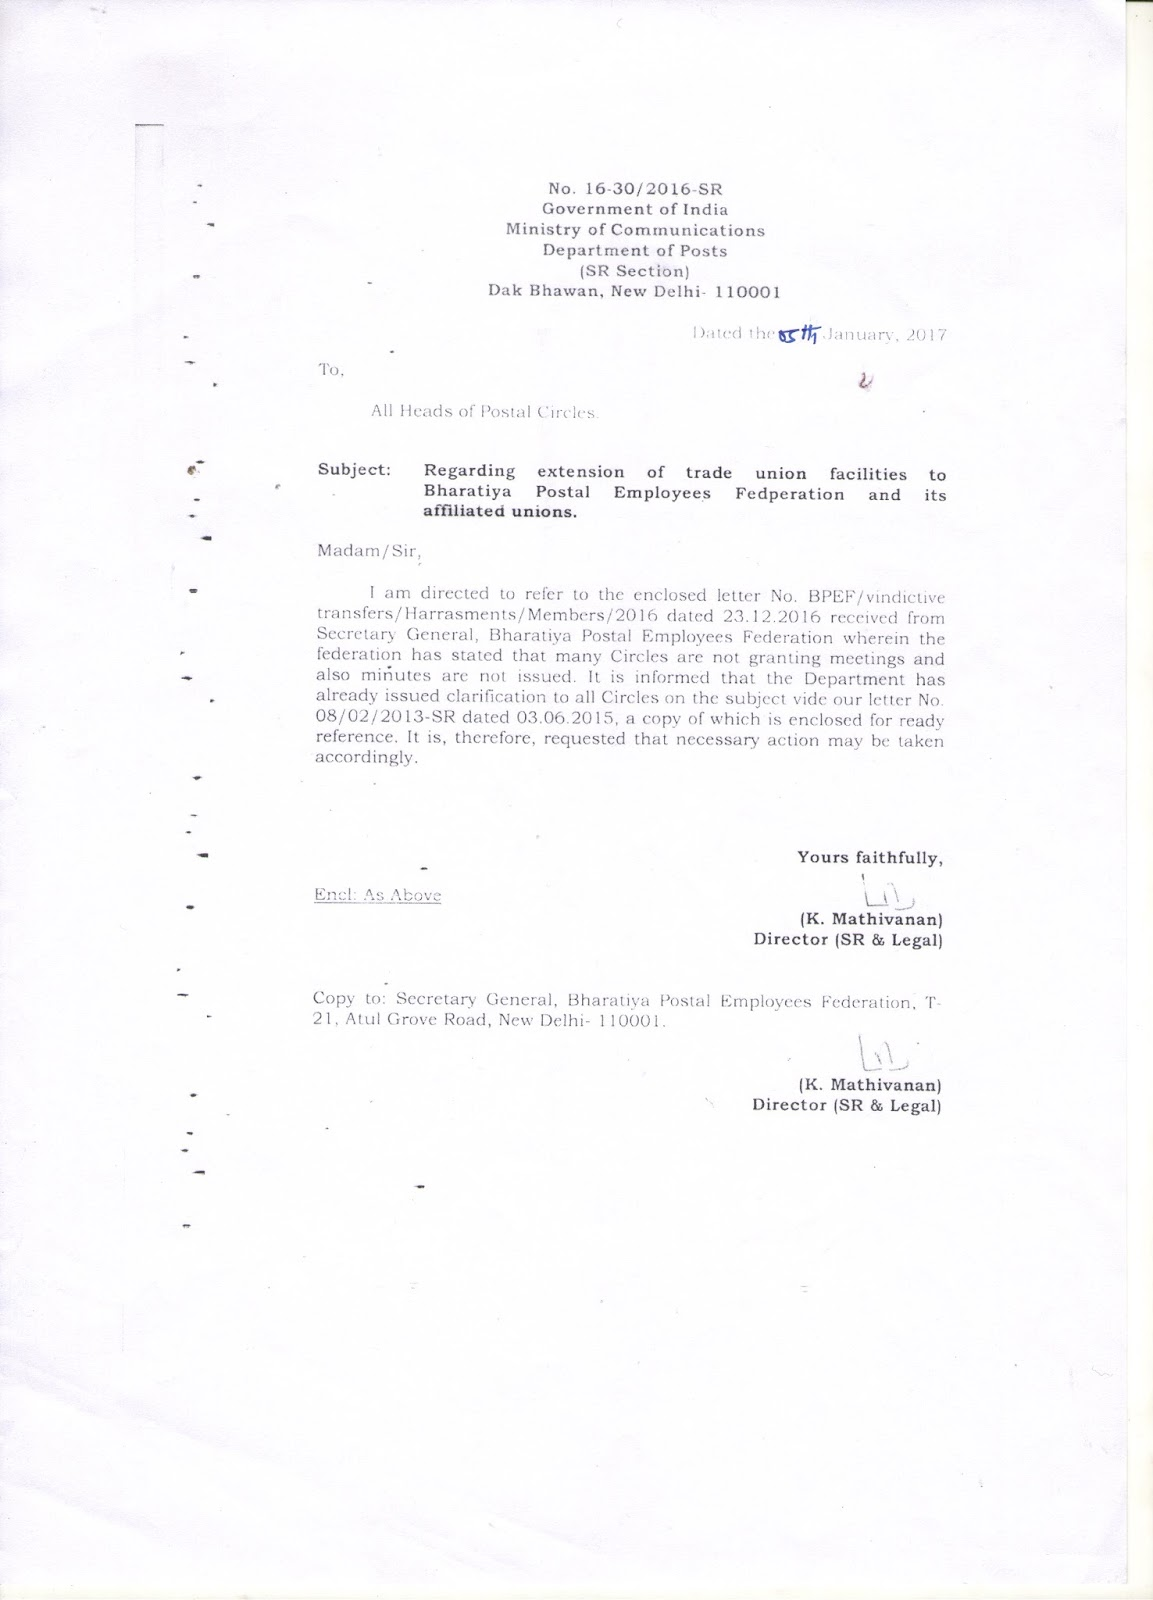 bharatiya postal employees federation regarding extension of trade union facilities to bharatiya postal employees federation and its affiliated unions